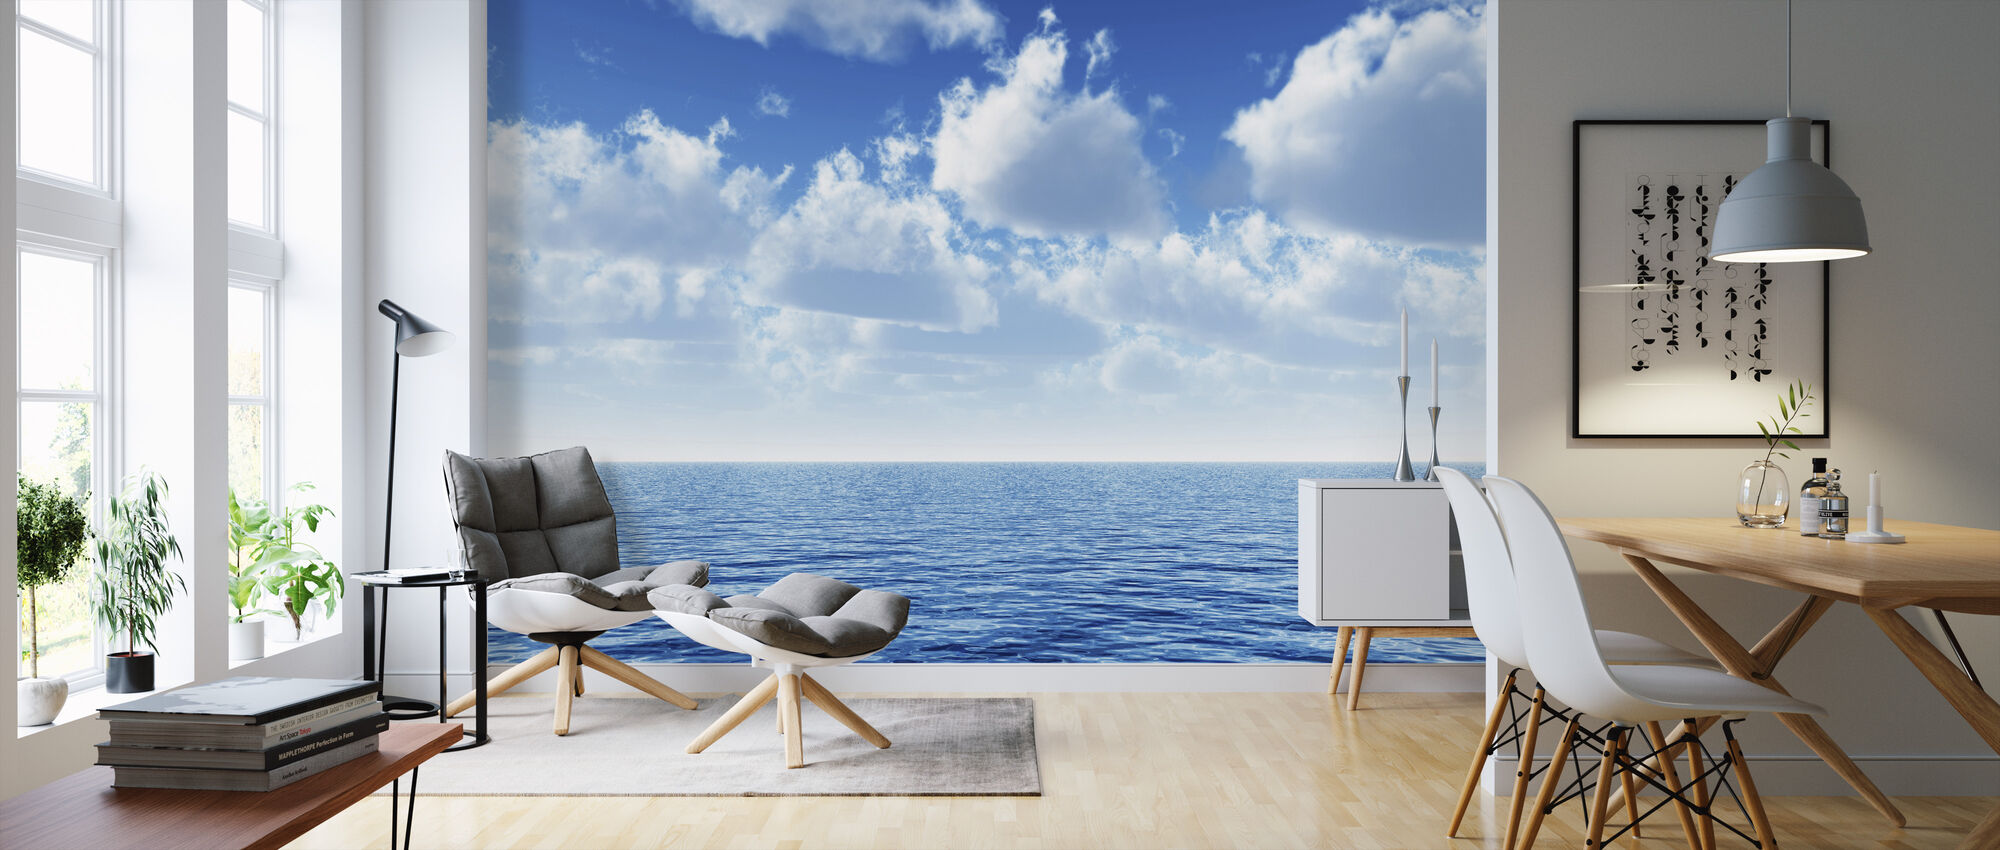 Cloudy Blue Sky Horizon - Wallpaper - Living Room